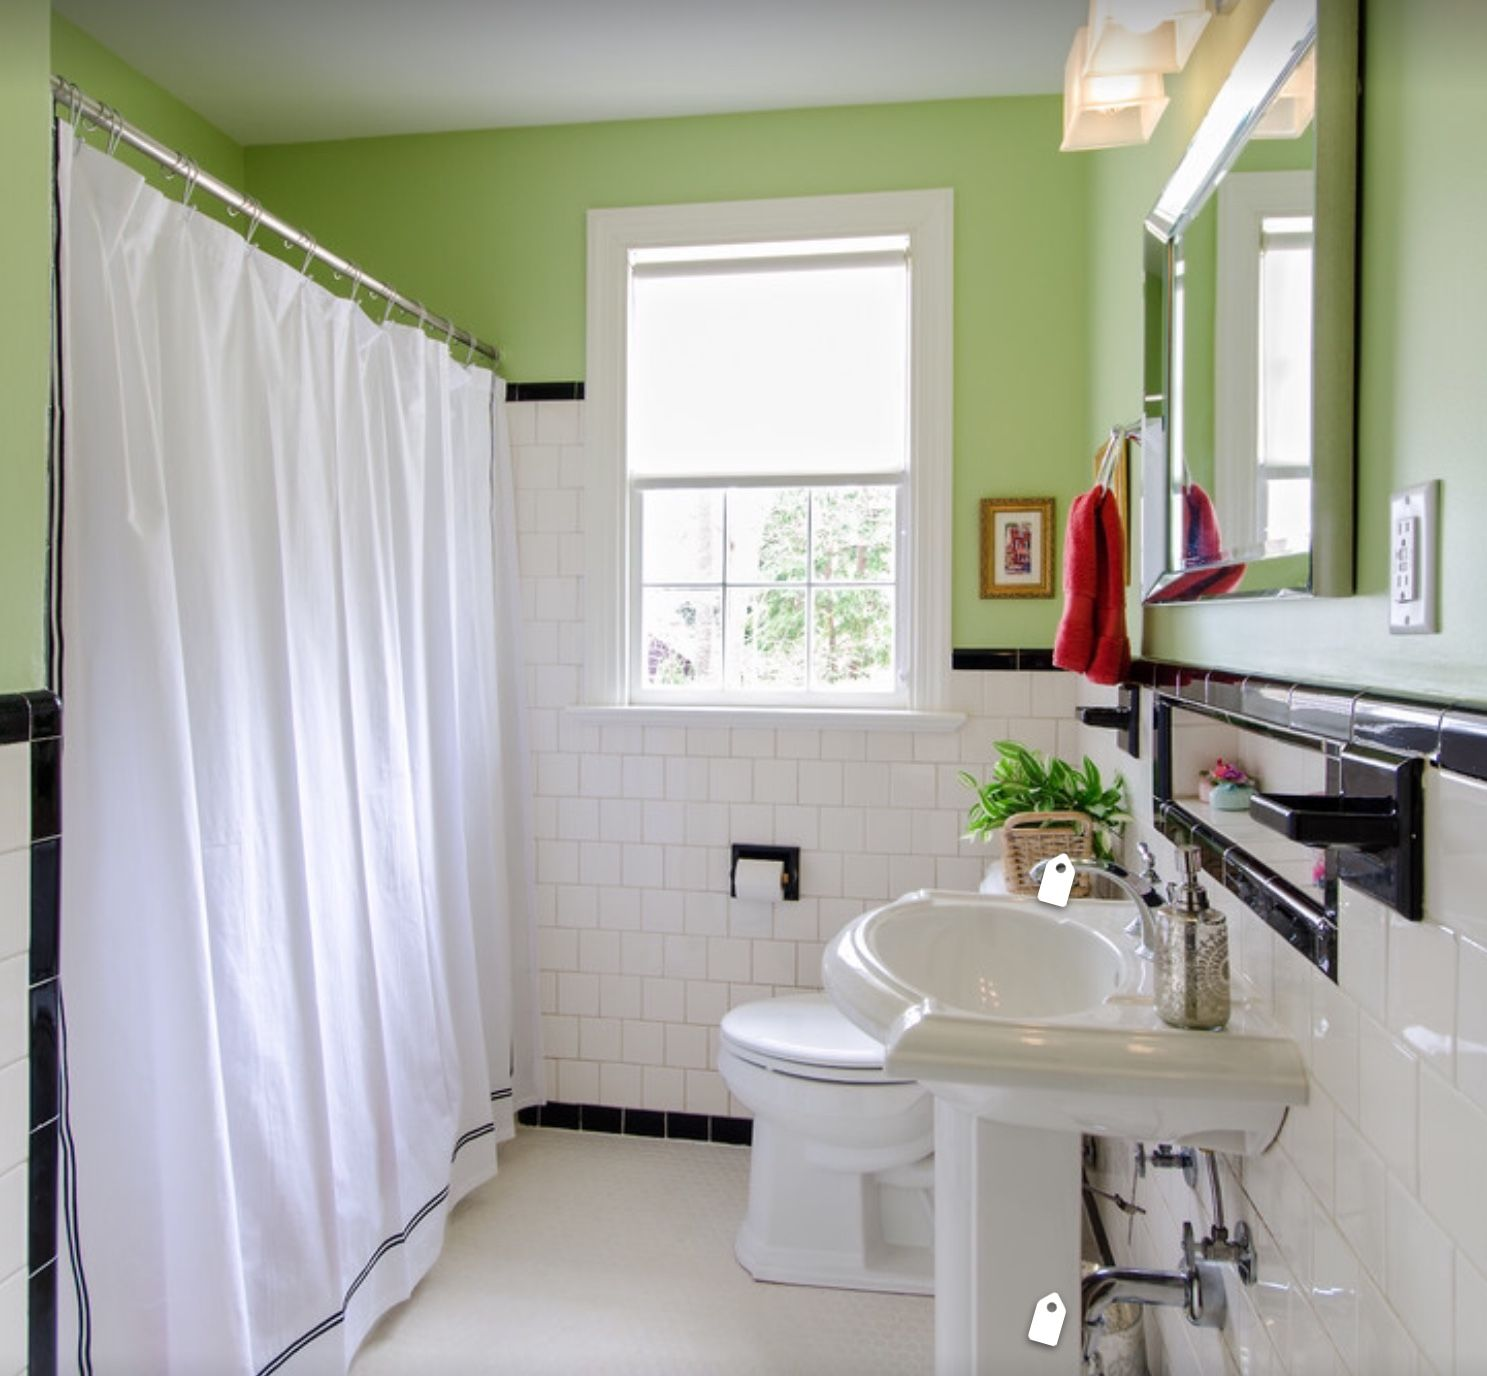 Pin by Terry on Vintage Style Bathrooms | Pinterest